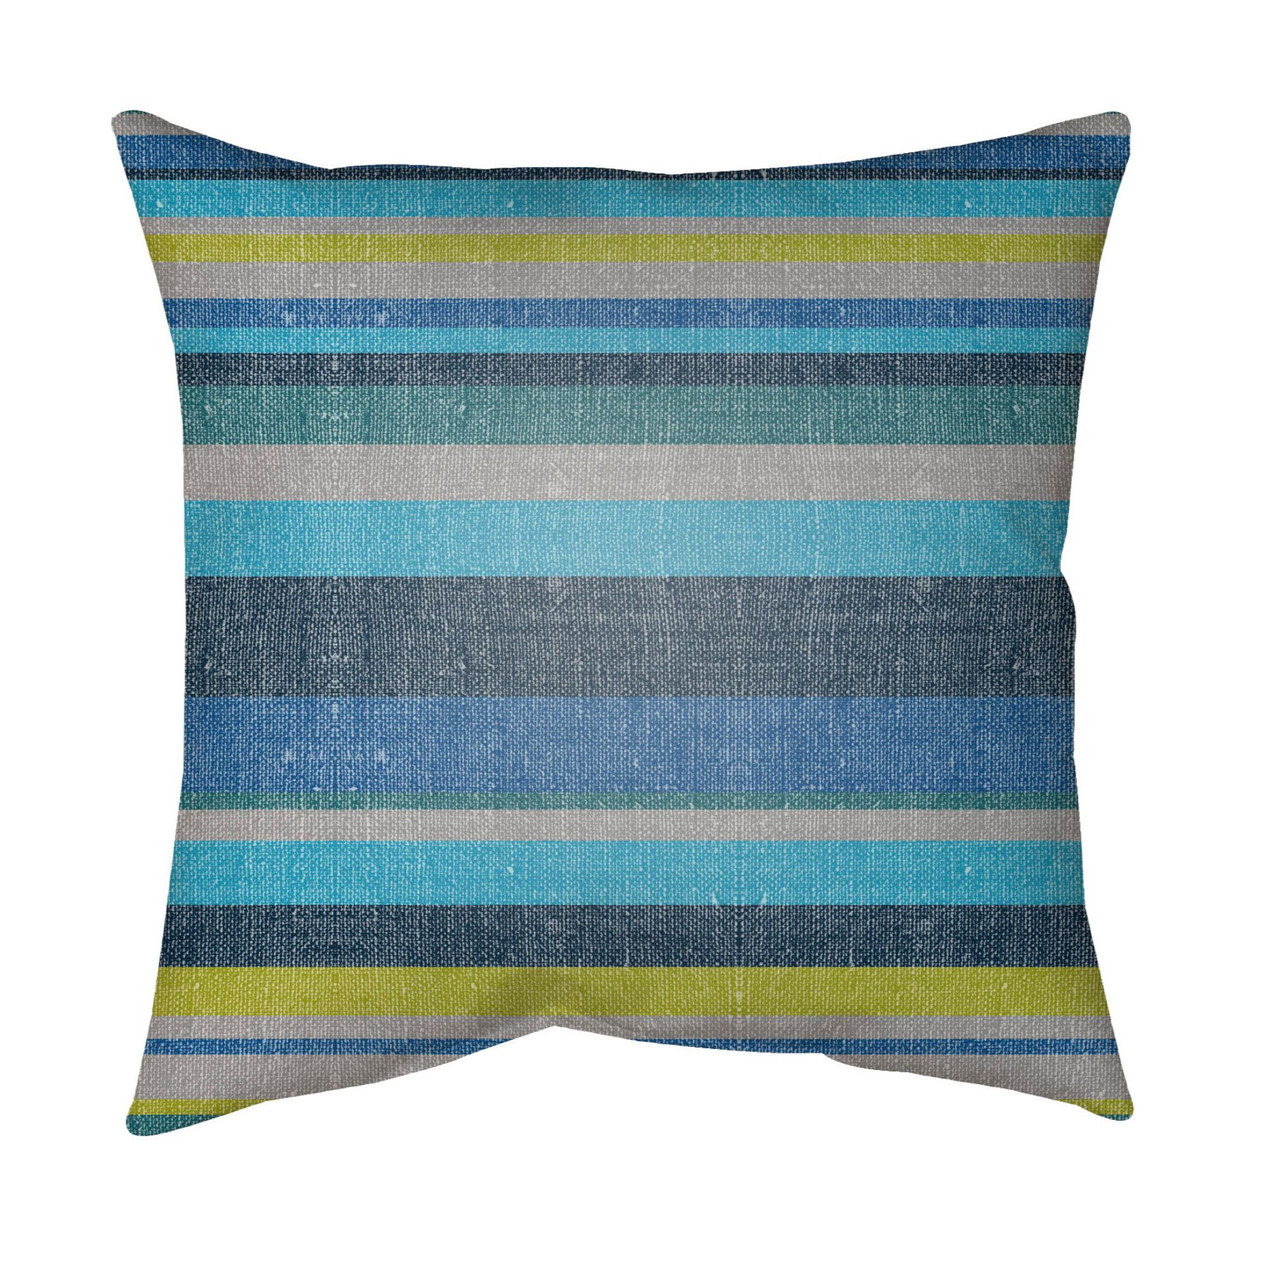 16 Olive Green Blue Striped Square Throw Pillow Cover With Knife Edge Christmas Central